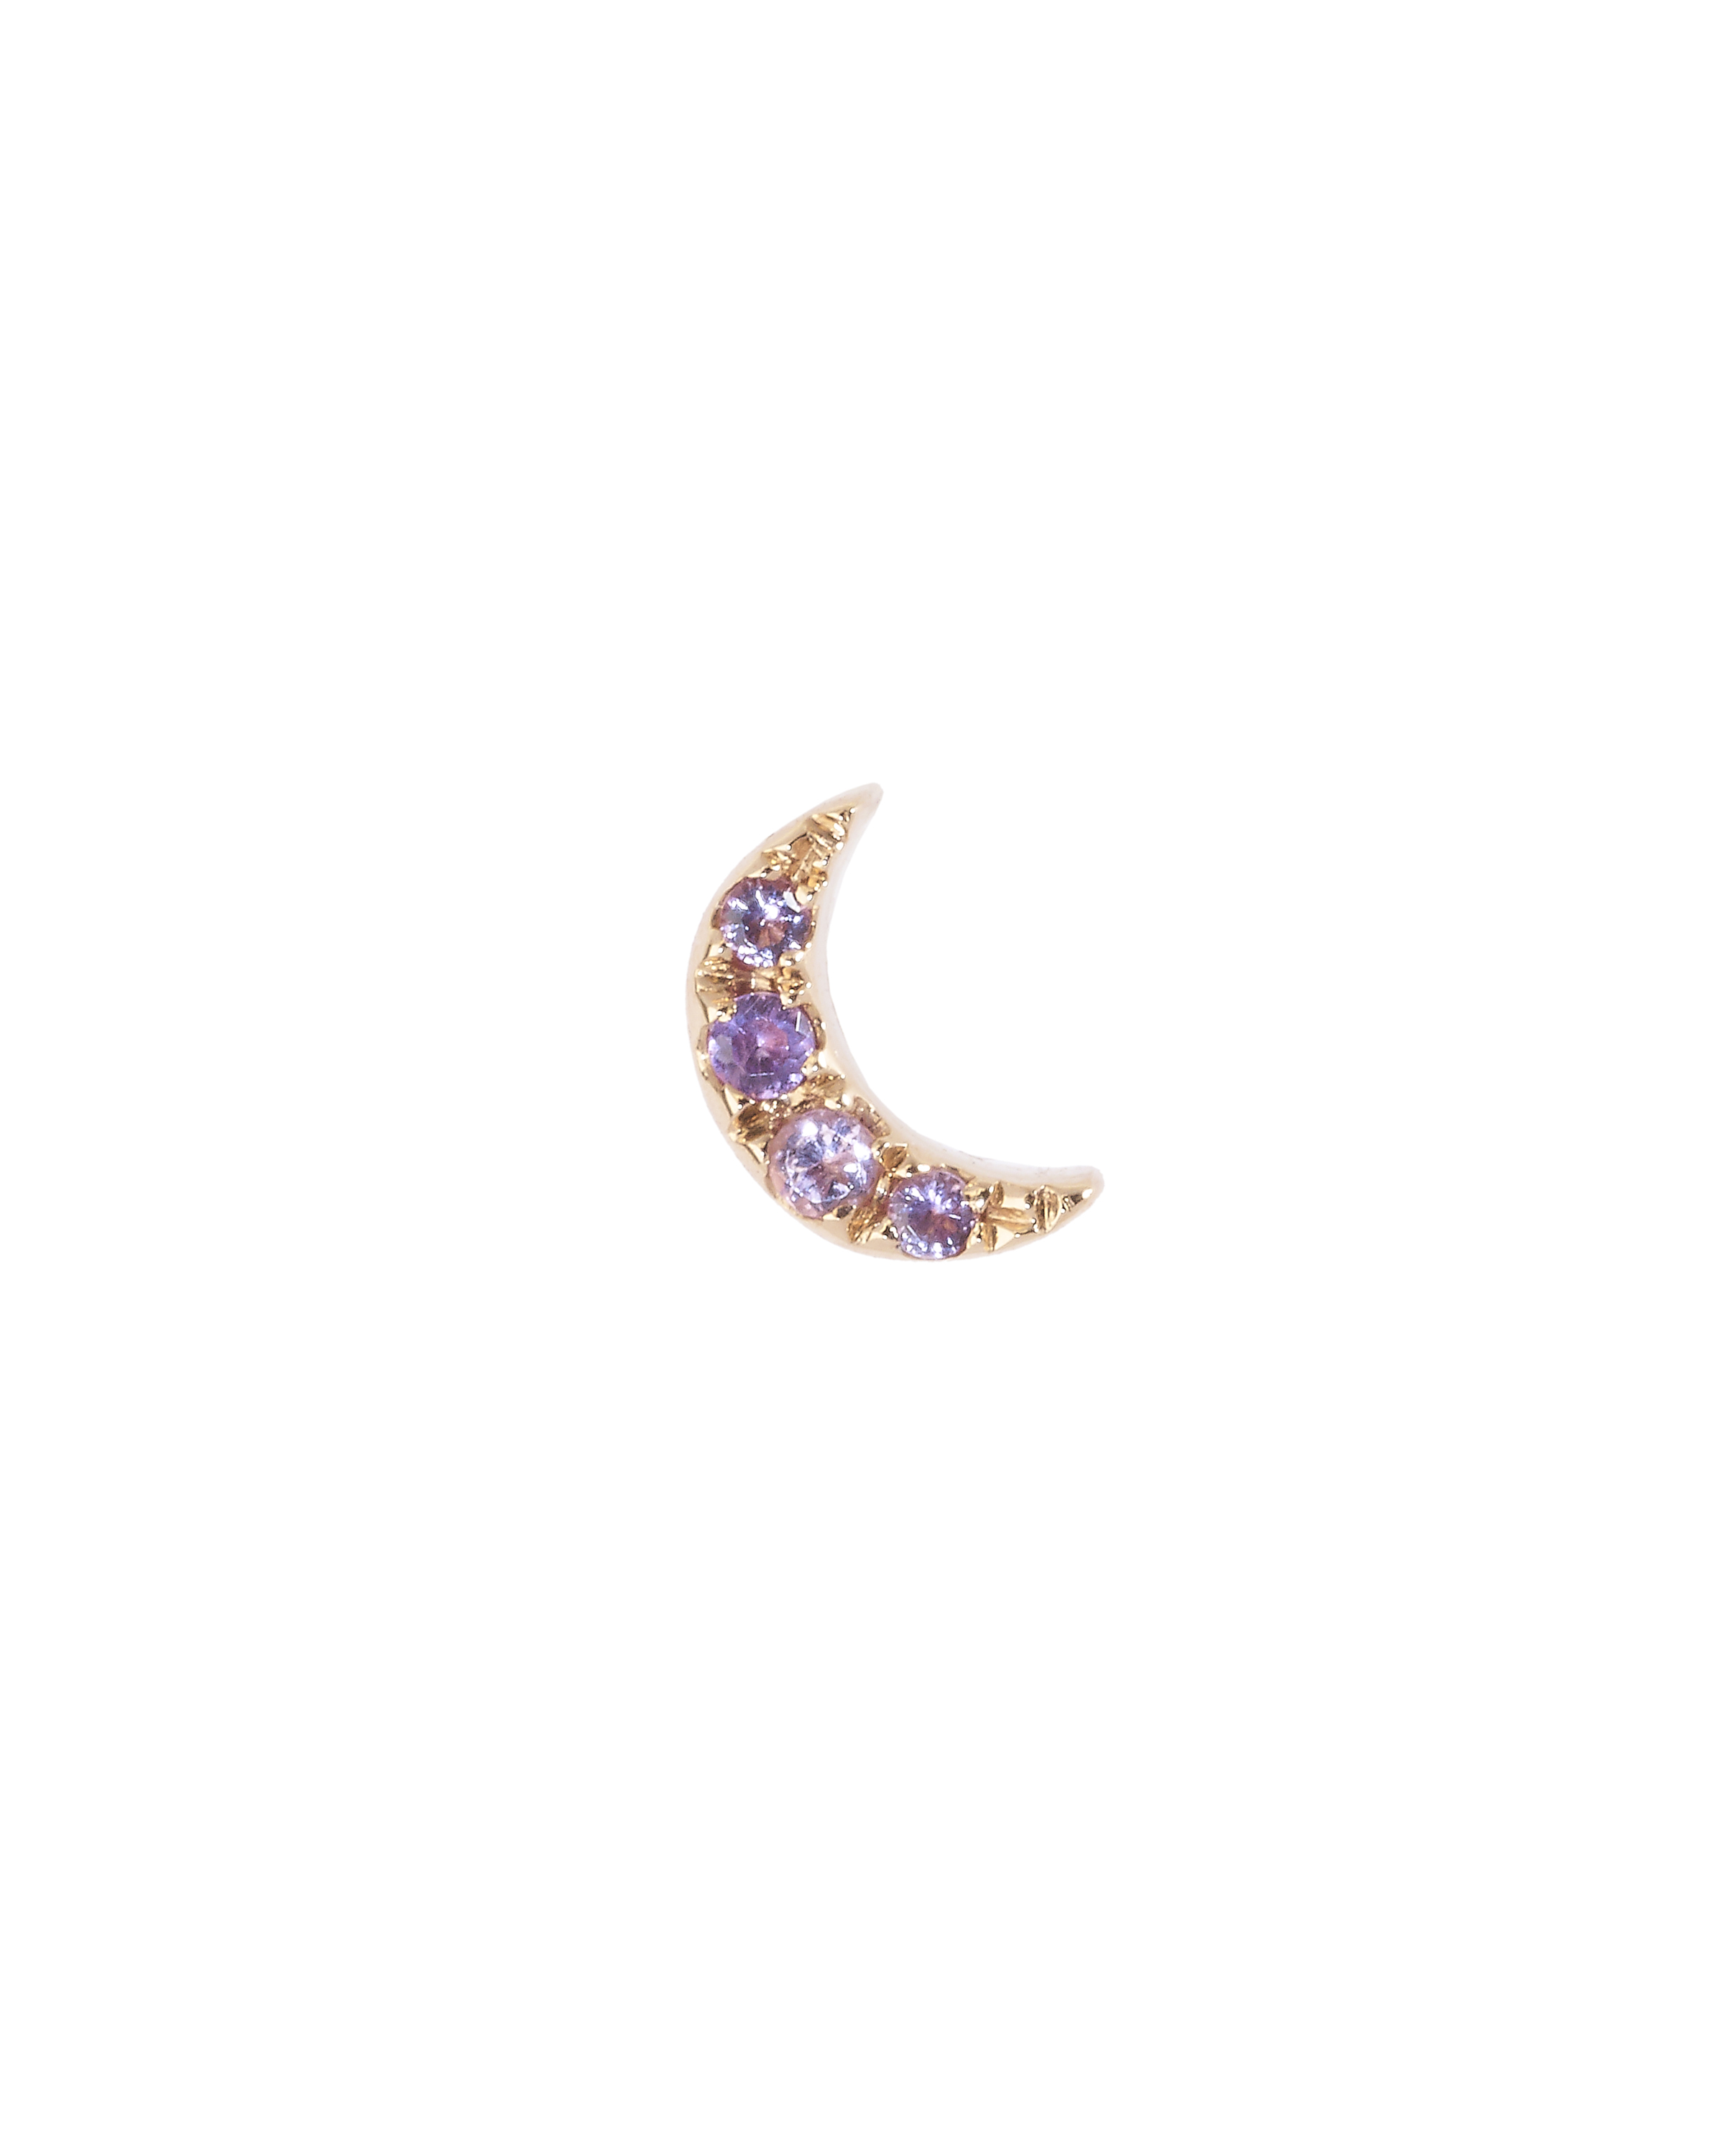 Moonlight Amethyst Earrings by Marmari on curated-crowd.com